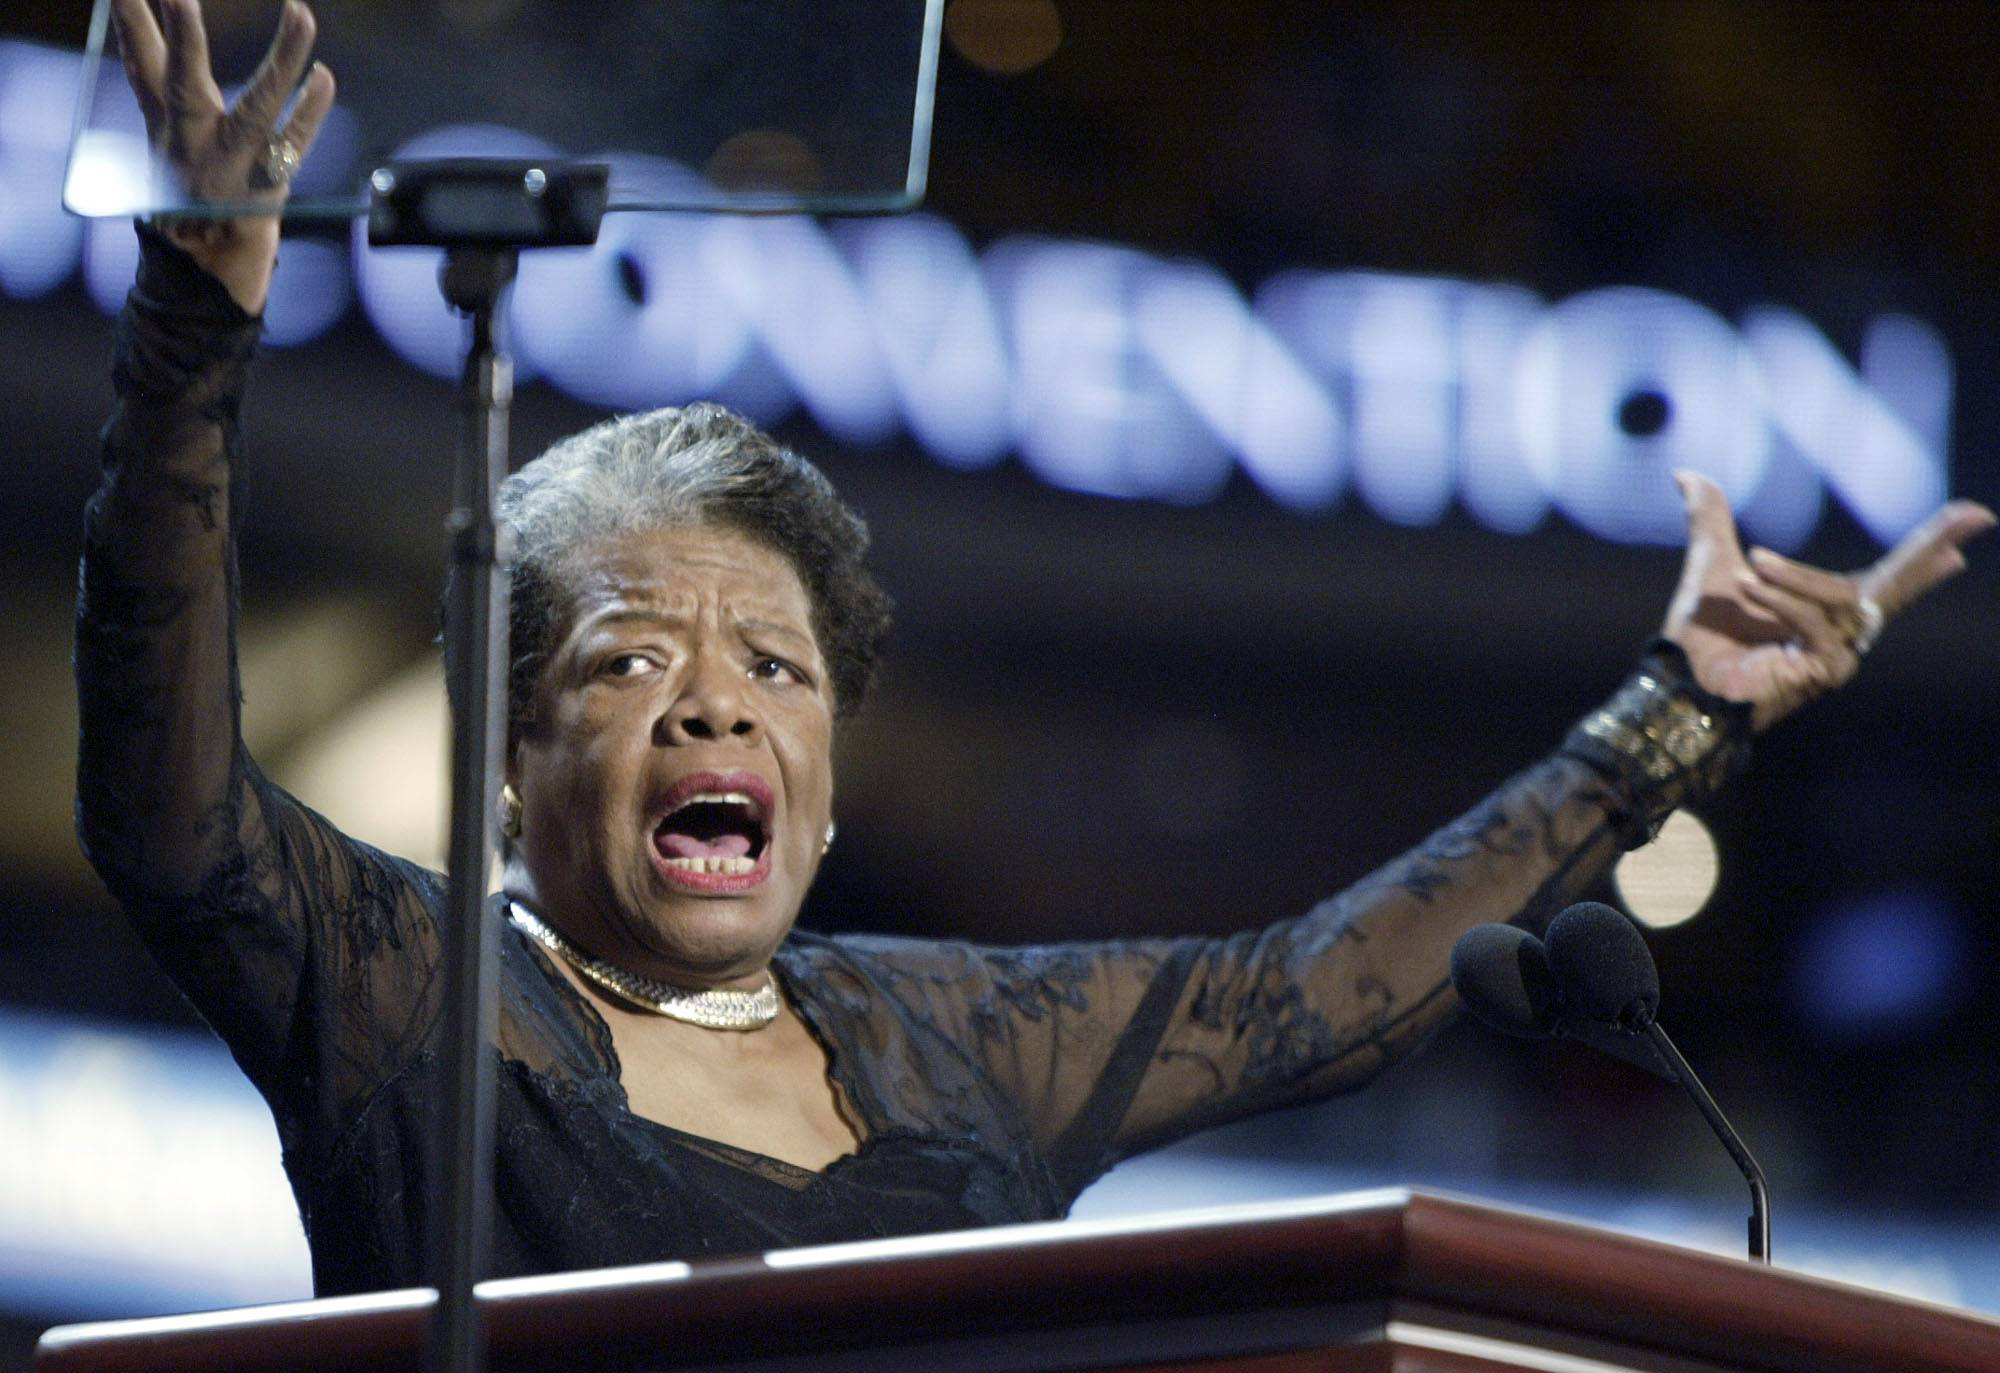 Maya Angelou speaks onstage during the Democratic National Convention, in Boston. Angelou, a Renaissance woman and cultural pioneer, has died, Wake Forest University said in a statement Wednesday, May 28, 2014. She was 86.